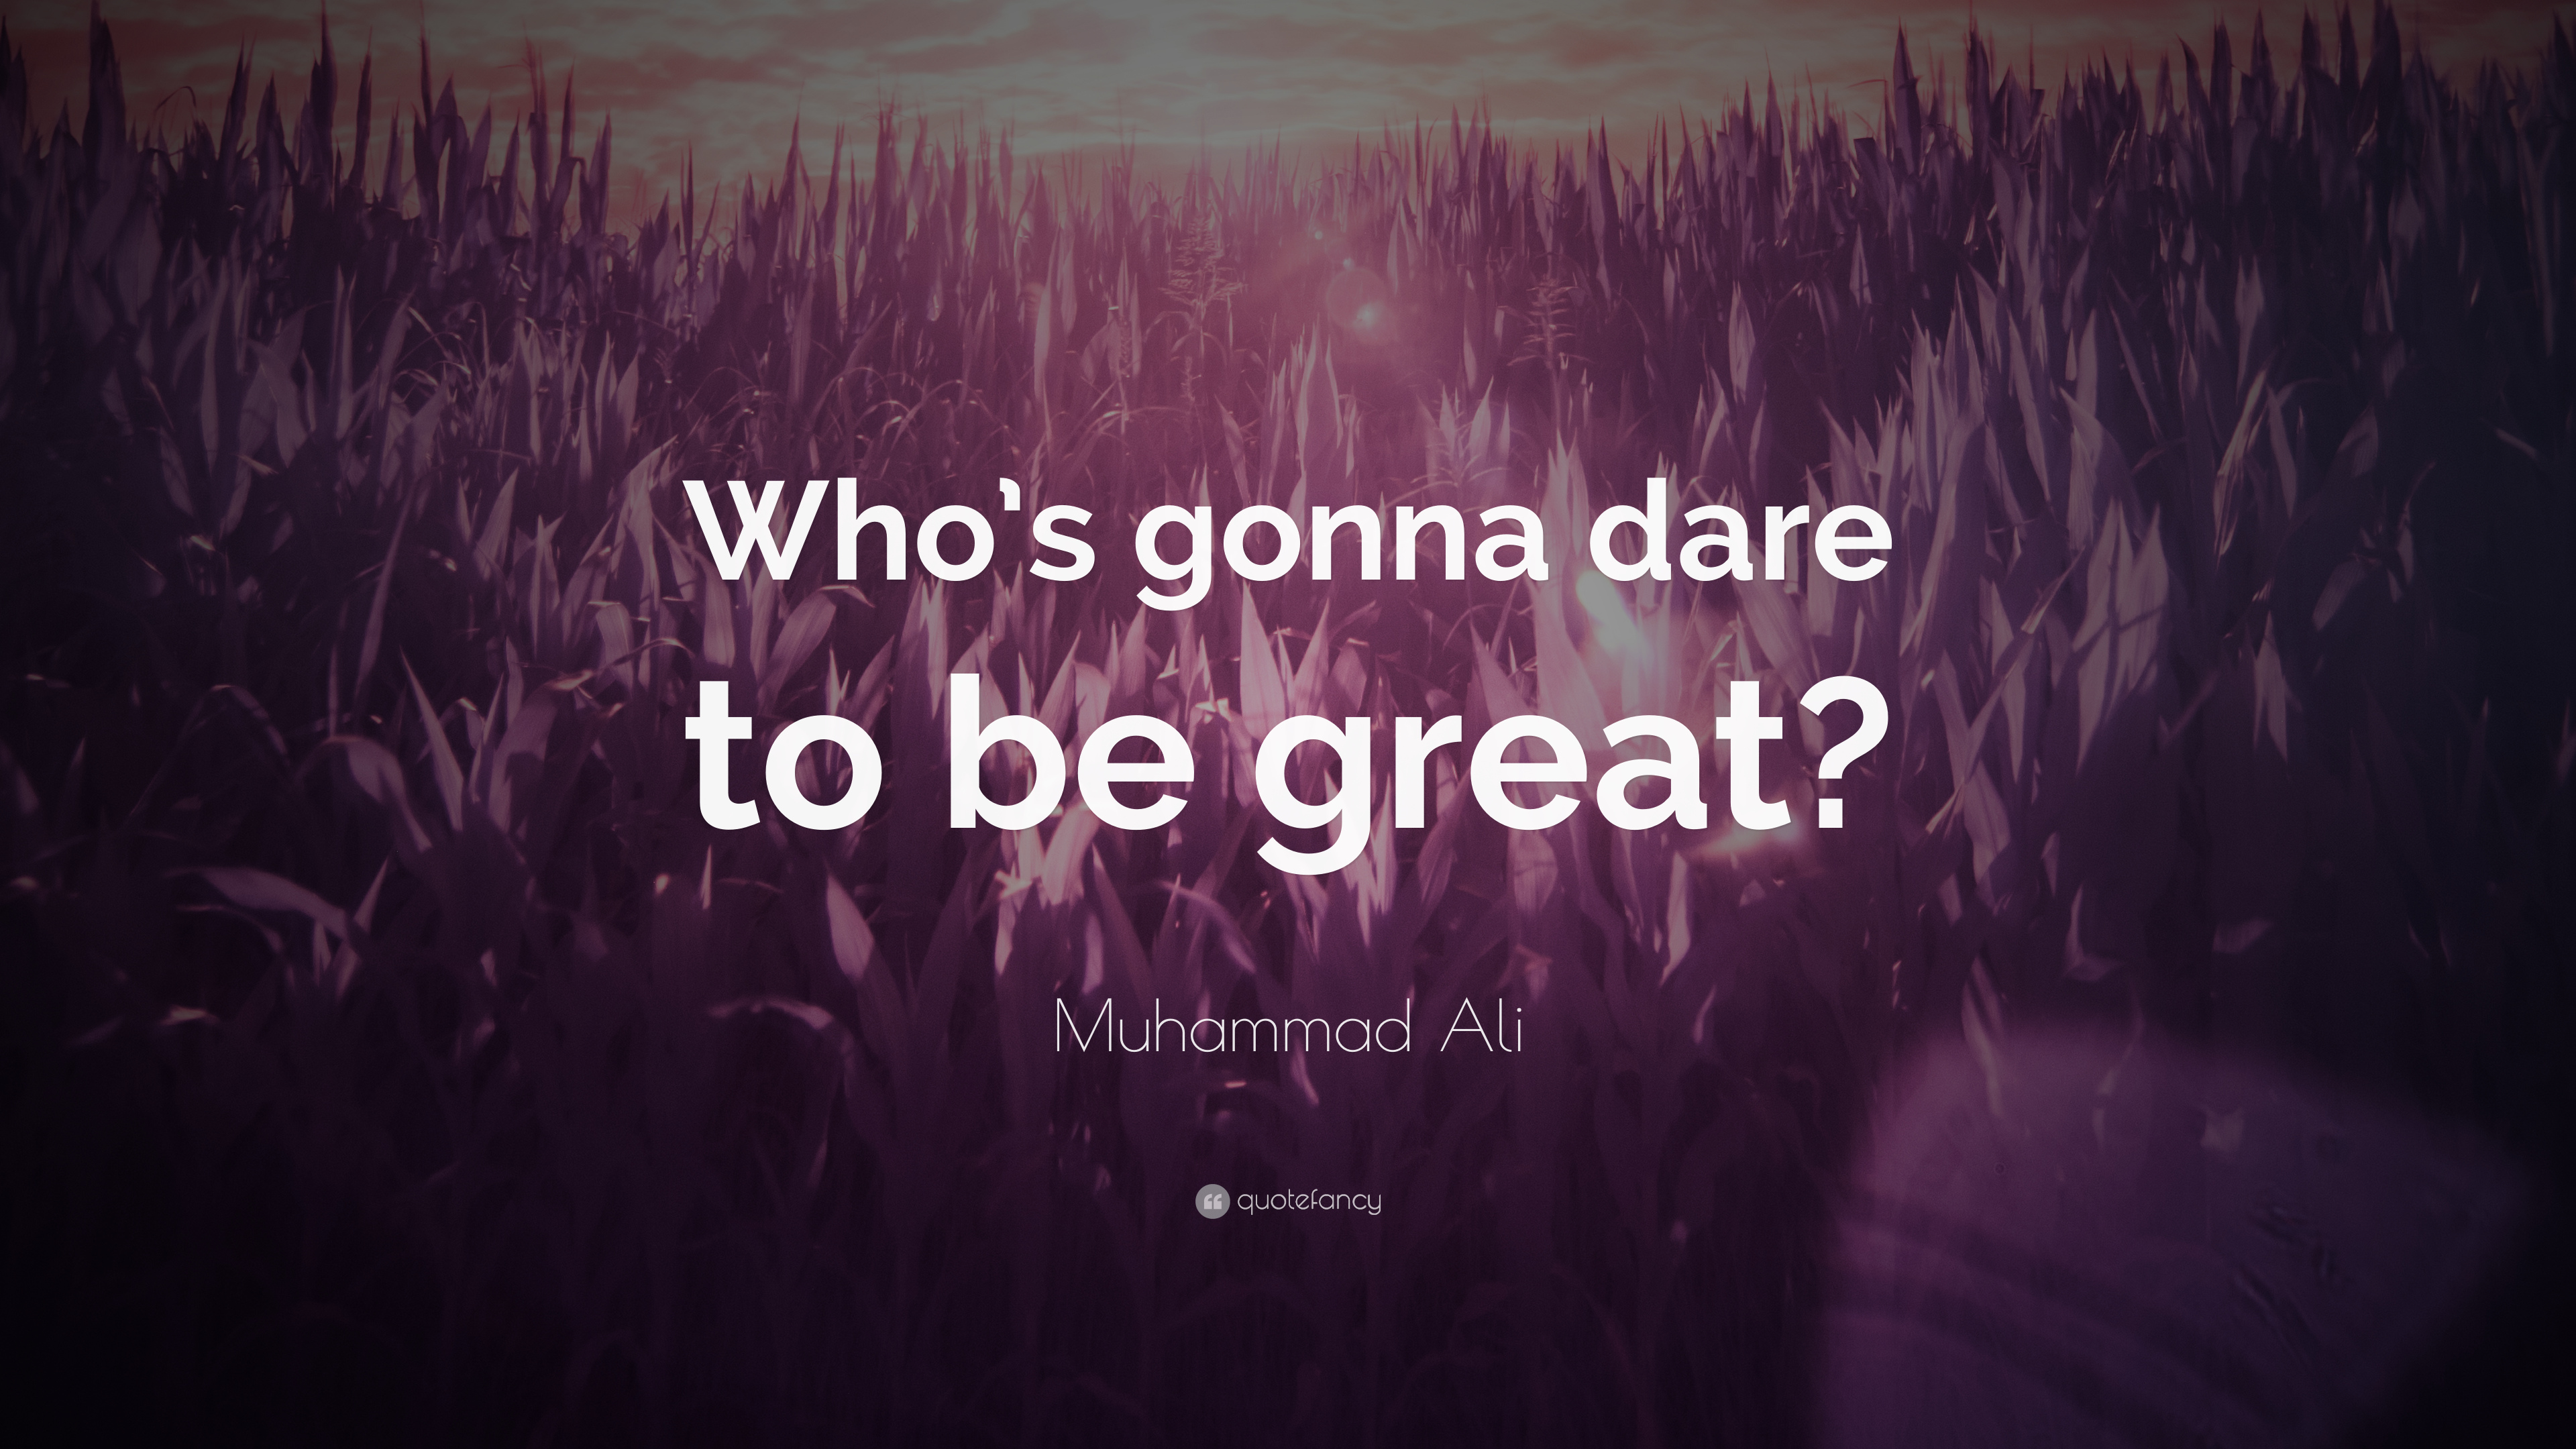 muhammad ali quote   u201cwho u2019s gonna dare to be great  u201d  12